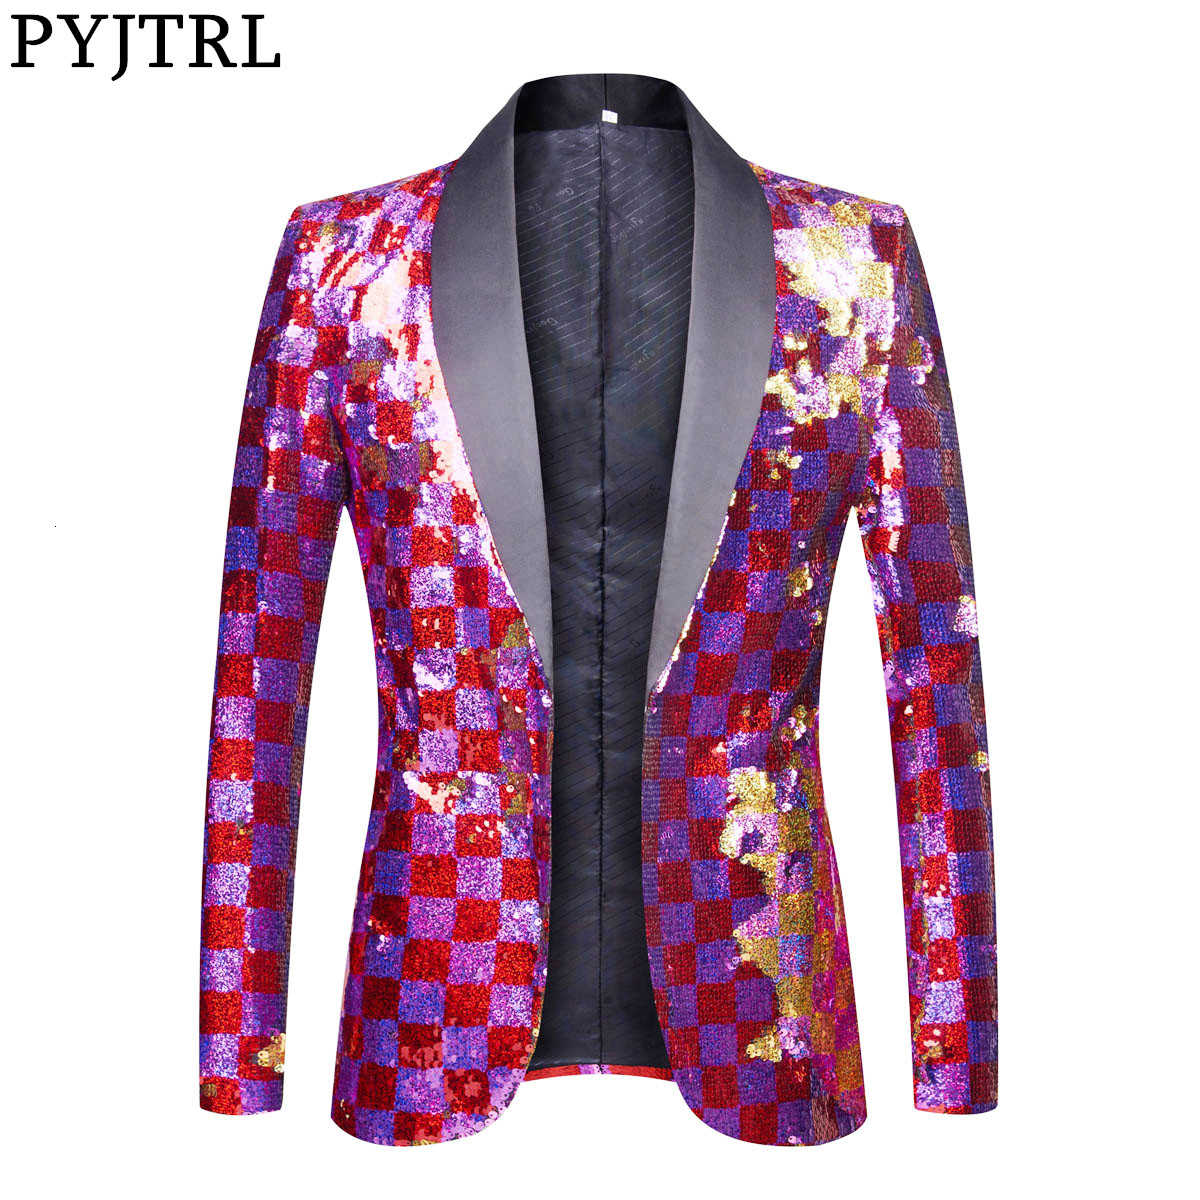 PYJTRL New Men Double-sided Colorful Plaid Purple Red Gold Pink Sequins Blazer Design DJ Singer Suit Jacket Fashion Outfit